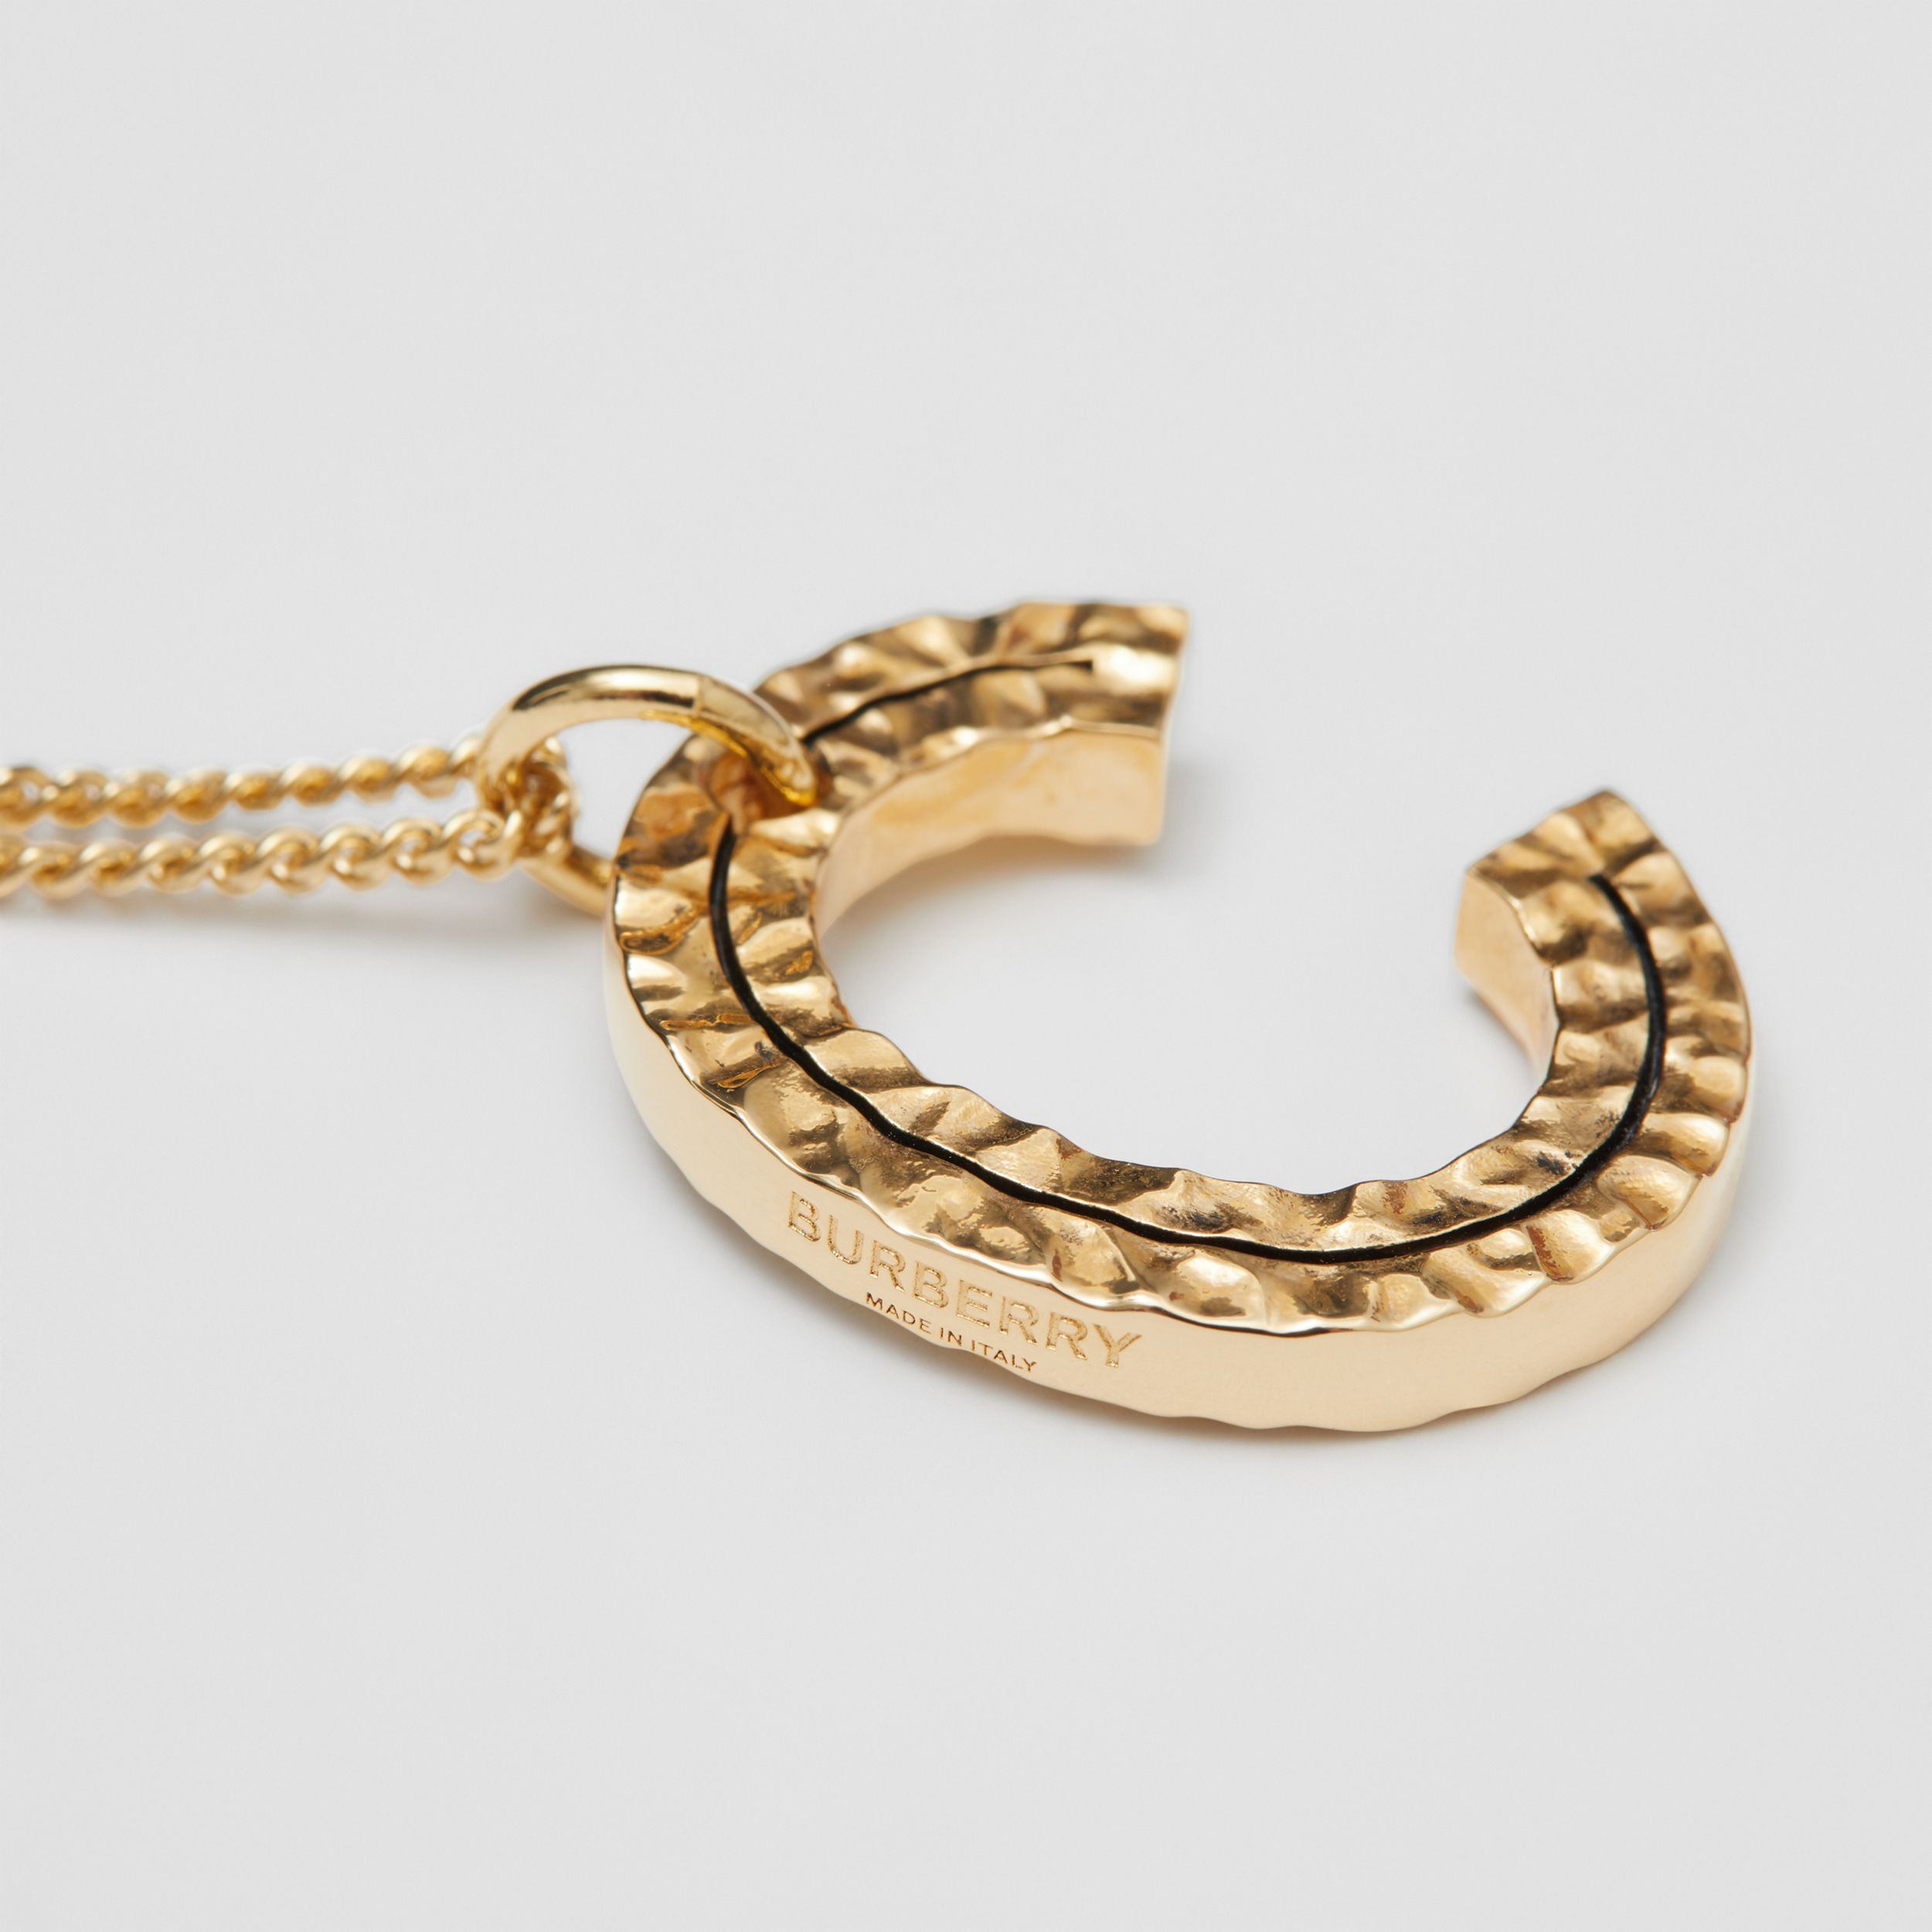 'C' Alphabet Charm Gold-plated Necklace in Light - Women | Burberry - 2